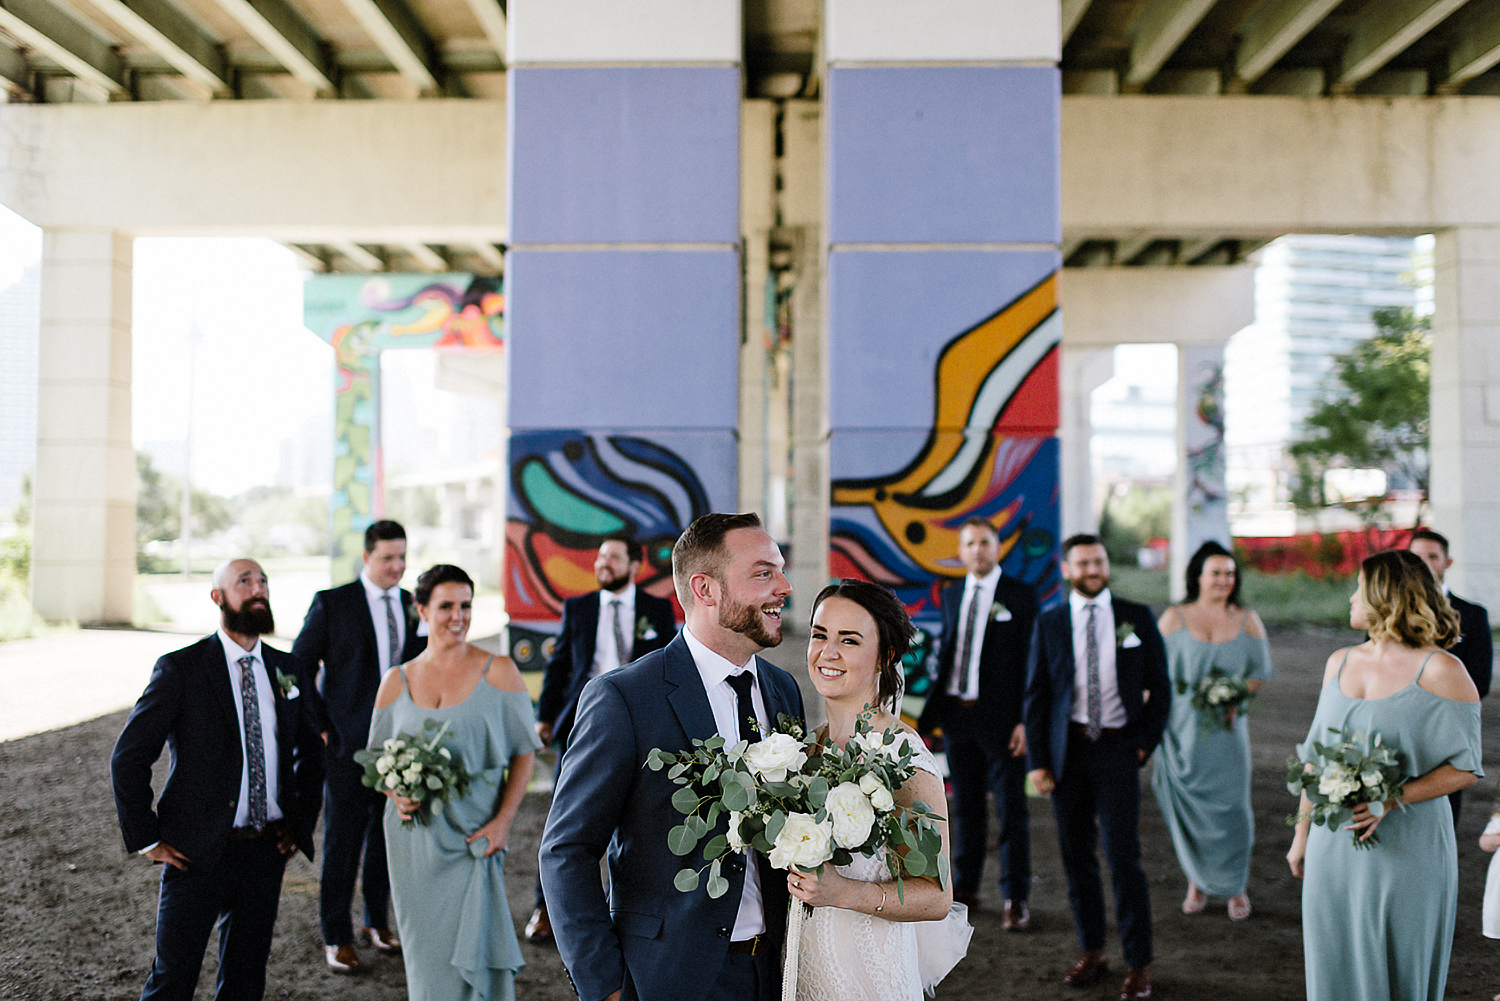 Best-Wedding-Photographers-Toronto-3B-photography-Photojournalistic-documentary-wedding-photography-alternative-cinematic-mood-Bridal-Party-under-the-underpass.jpg